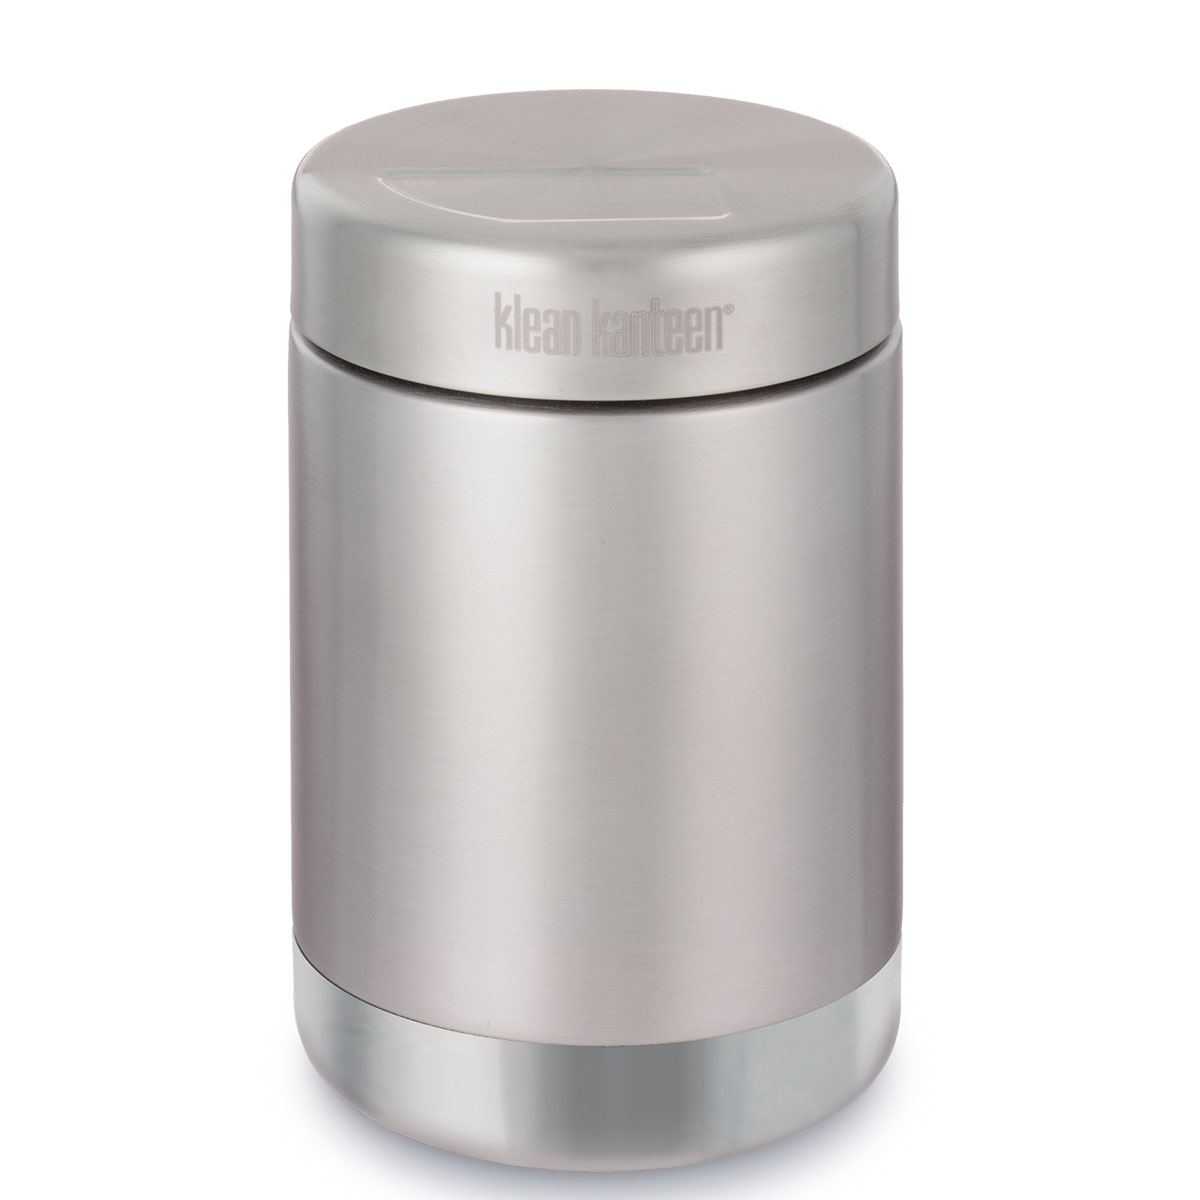 16oz Insulated Food Canister Stainless